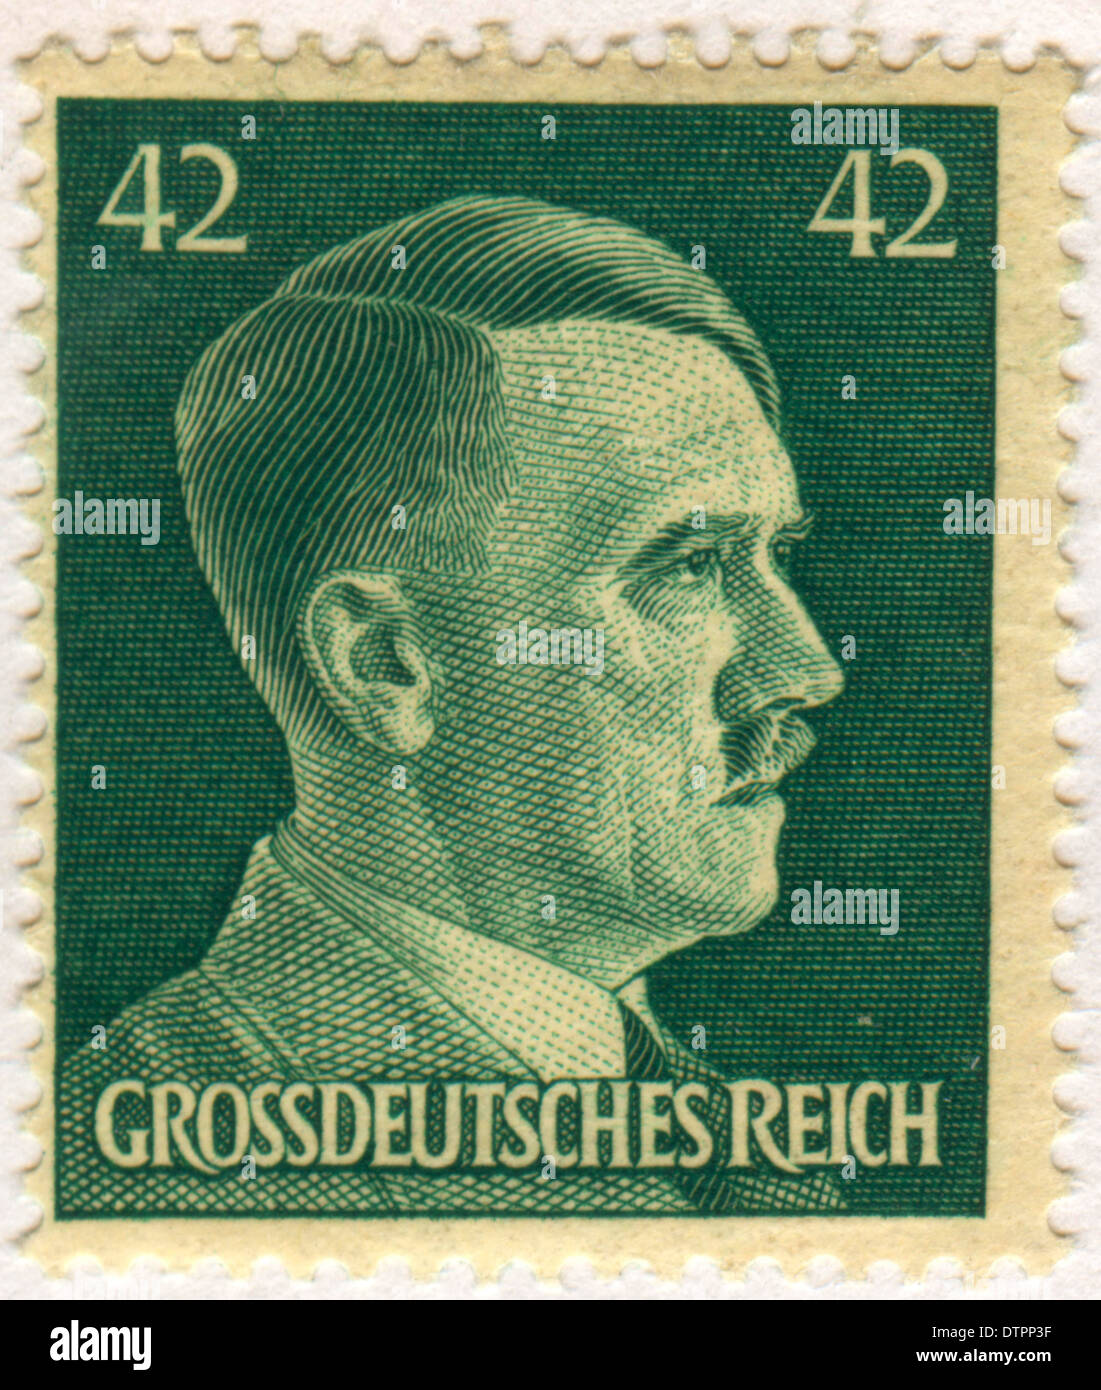 Images Of Stamped Concrete Patios: Adolf Hitler Stamp Stock Photos & Adolf Hitler Stamp Stock